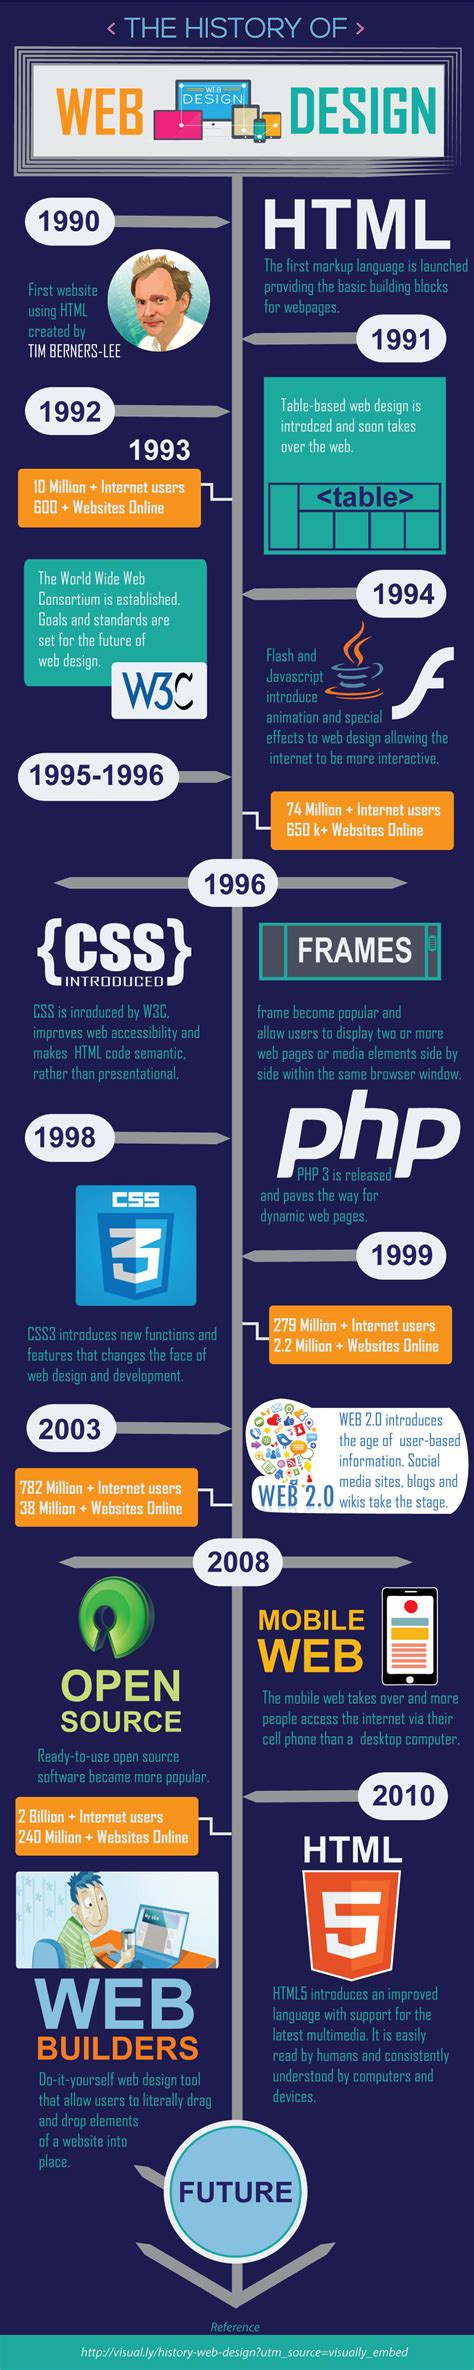 web layout history the key moments in the history of web design prologic